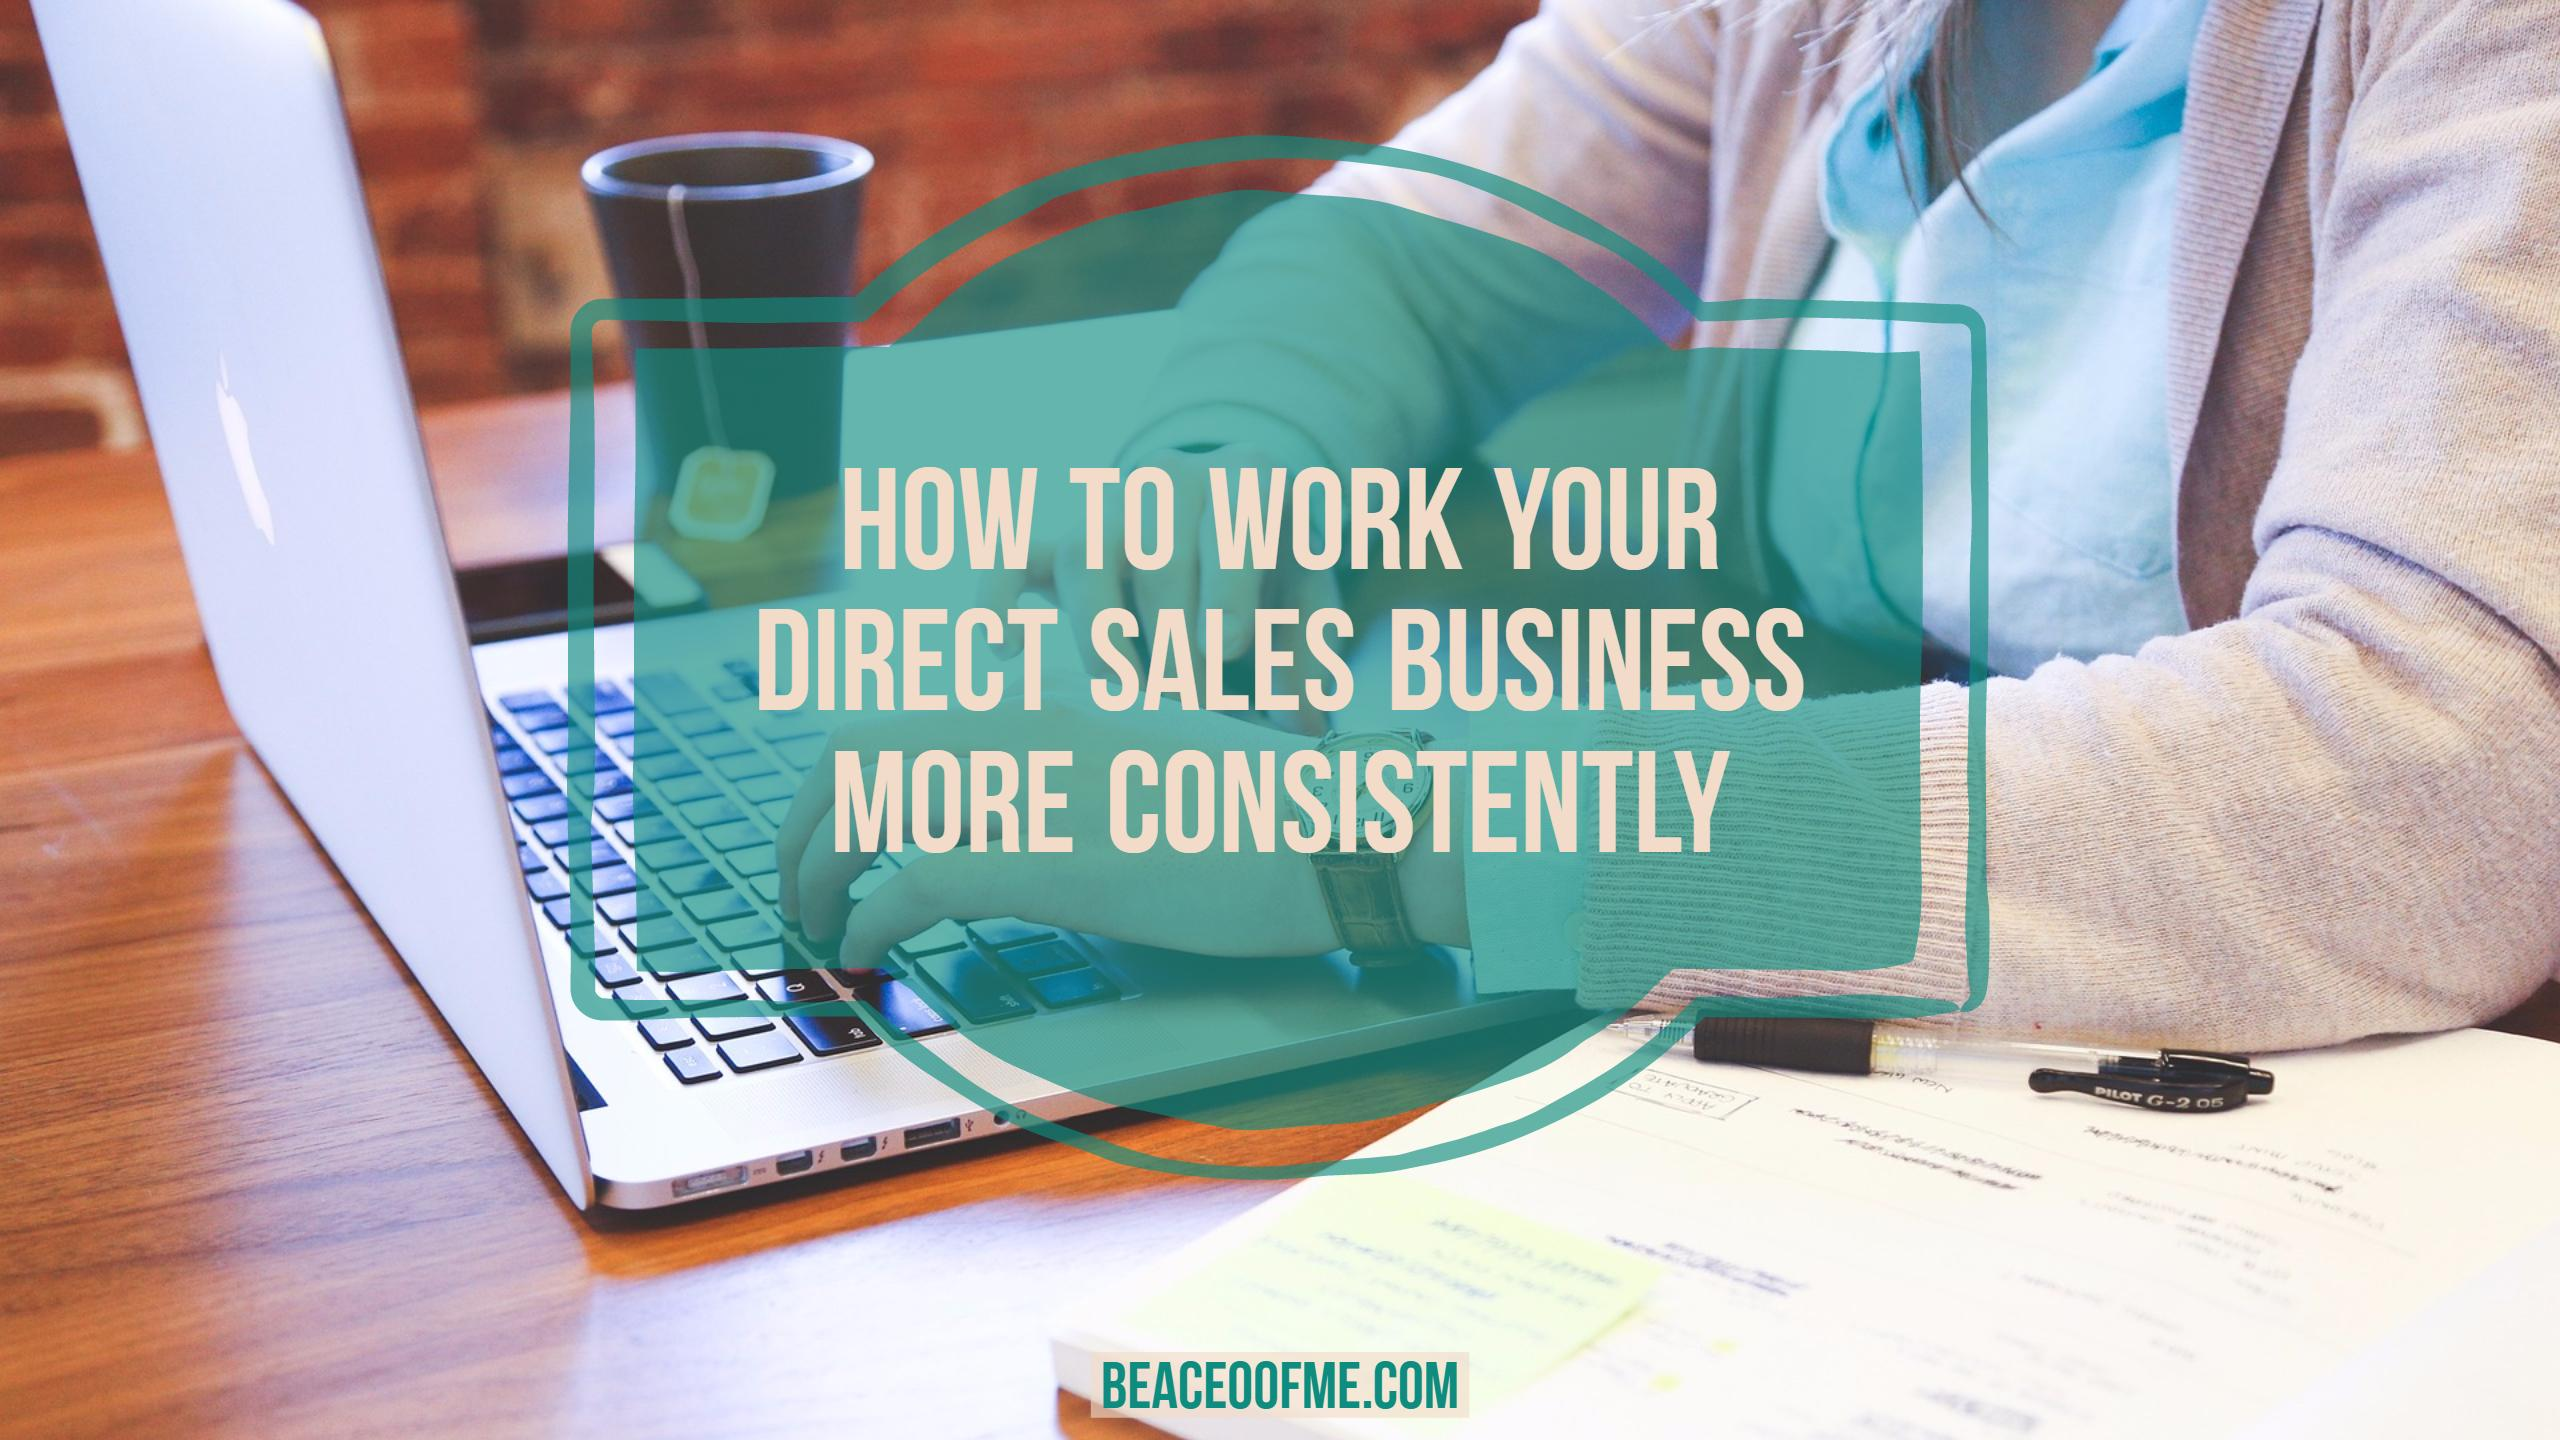 How to work your direct sales business more consistently